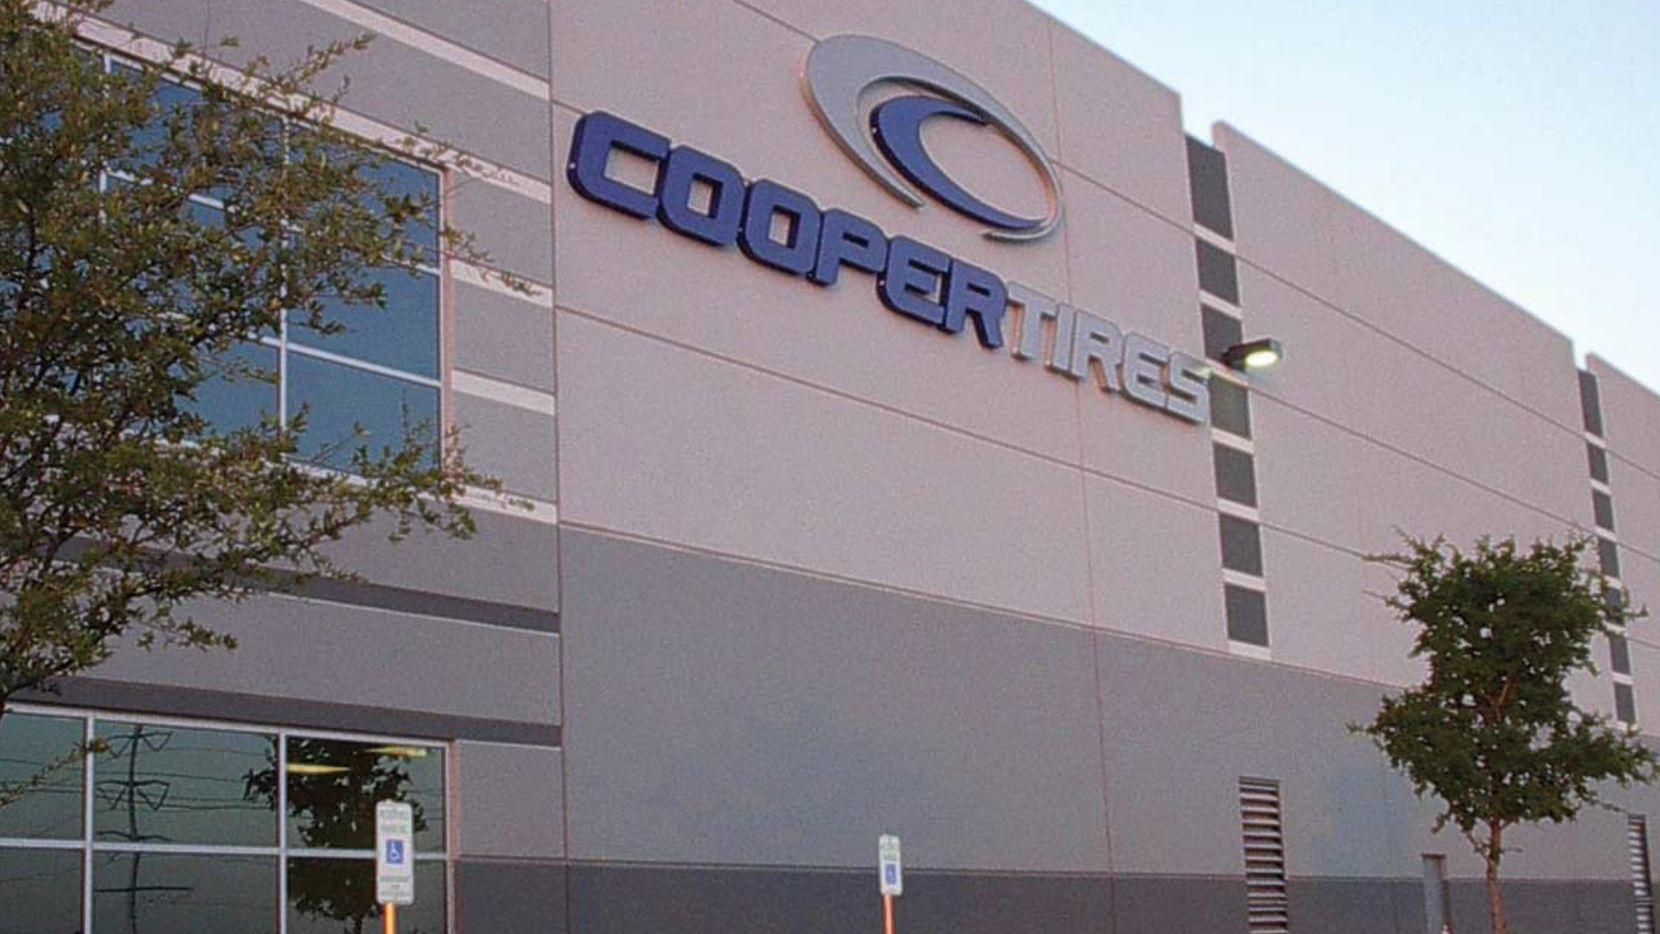 The Grand Prairie warehouse has housed a Cooper Tires distribution center.